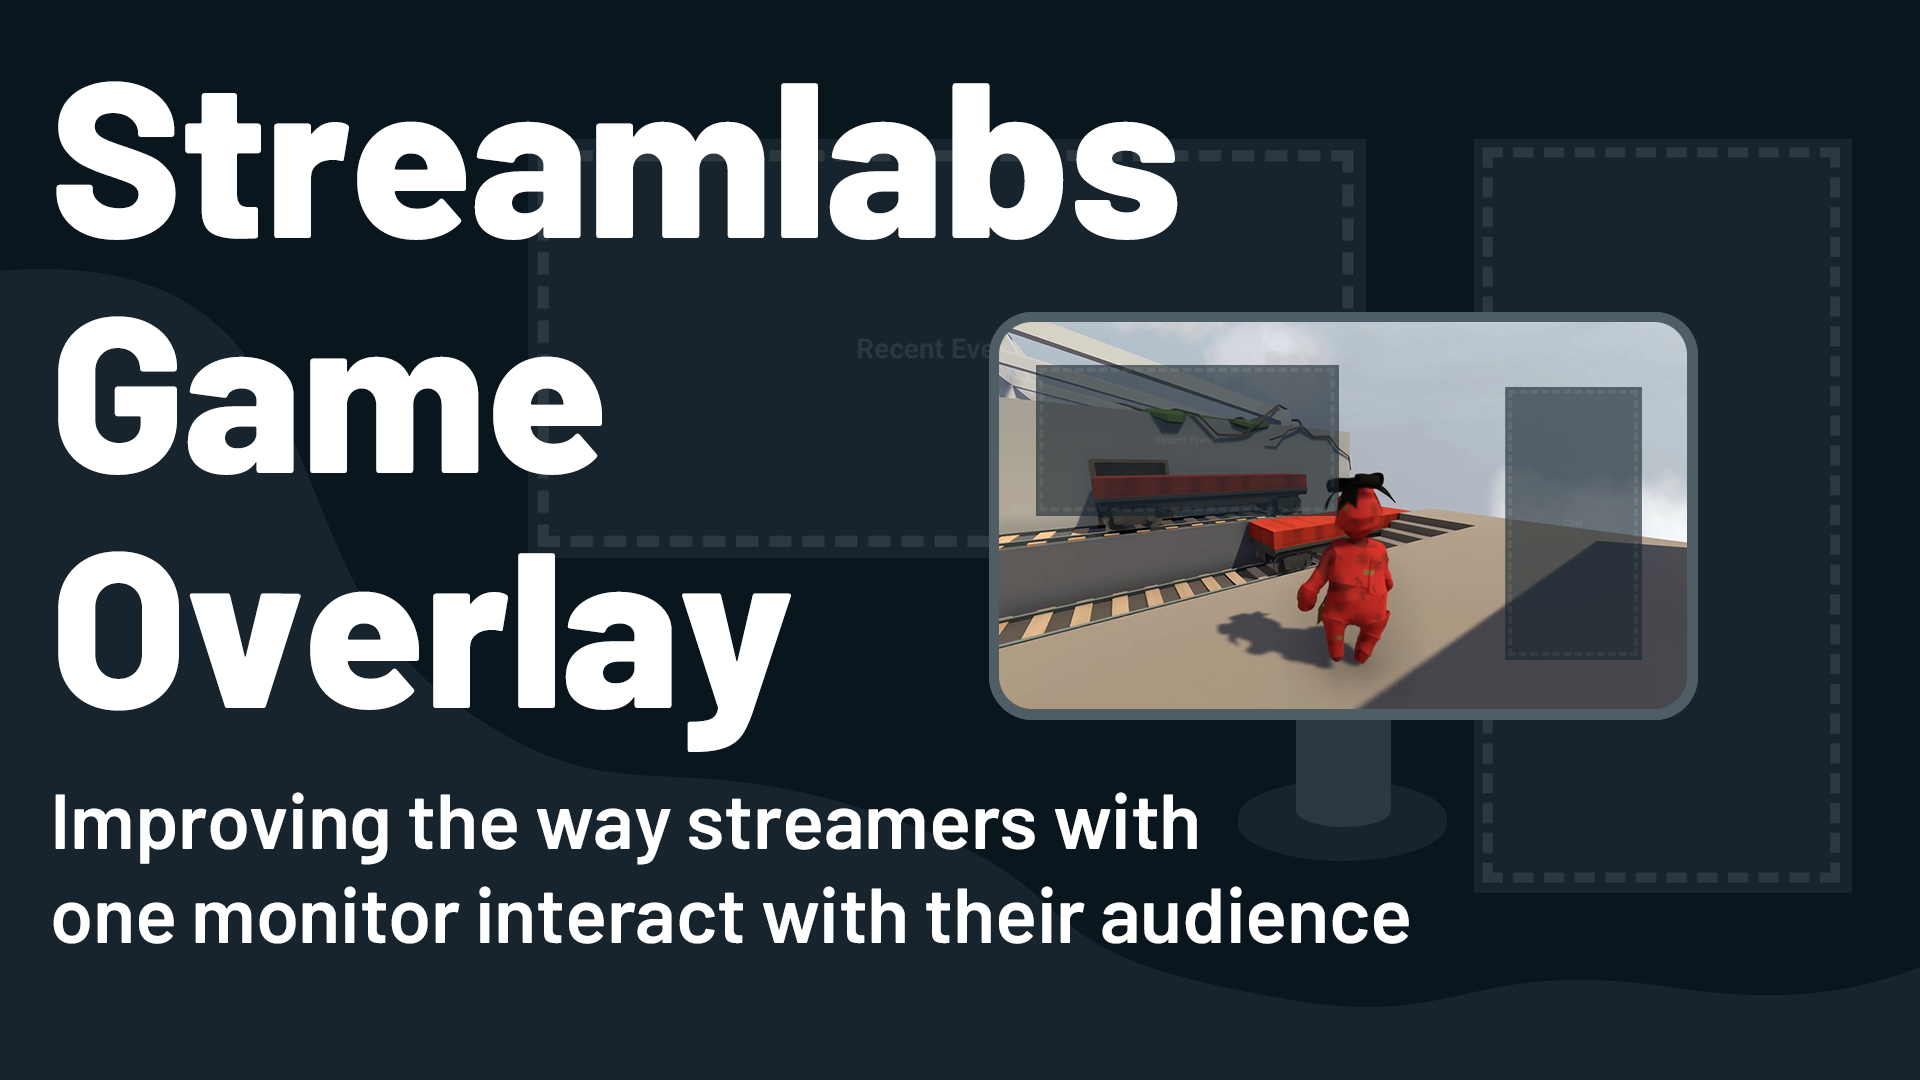 Streamlabs Game Overlay For Single Monitors Streamlabs Blog - gui designer for roblox by double trouble studio